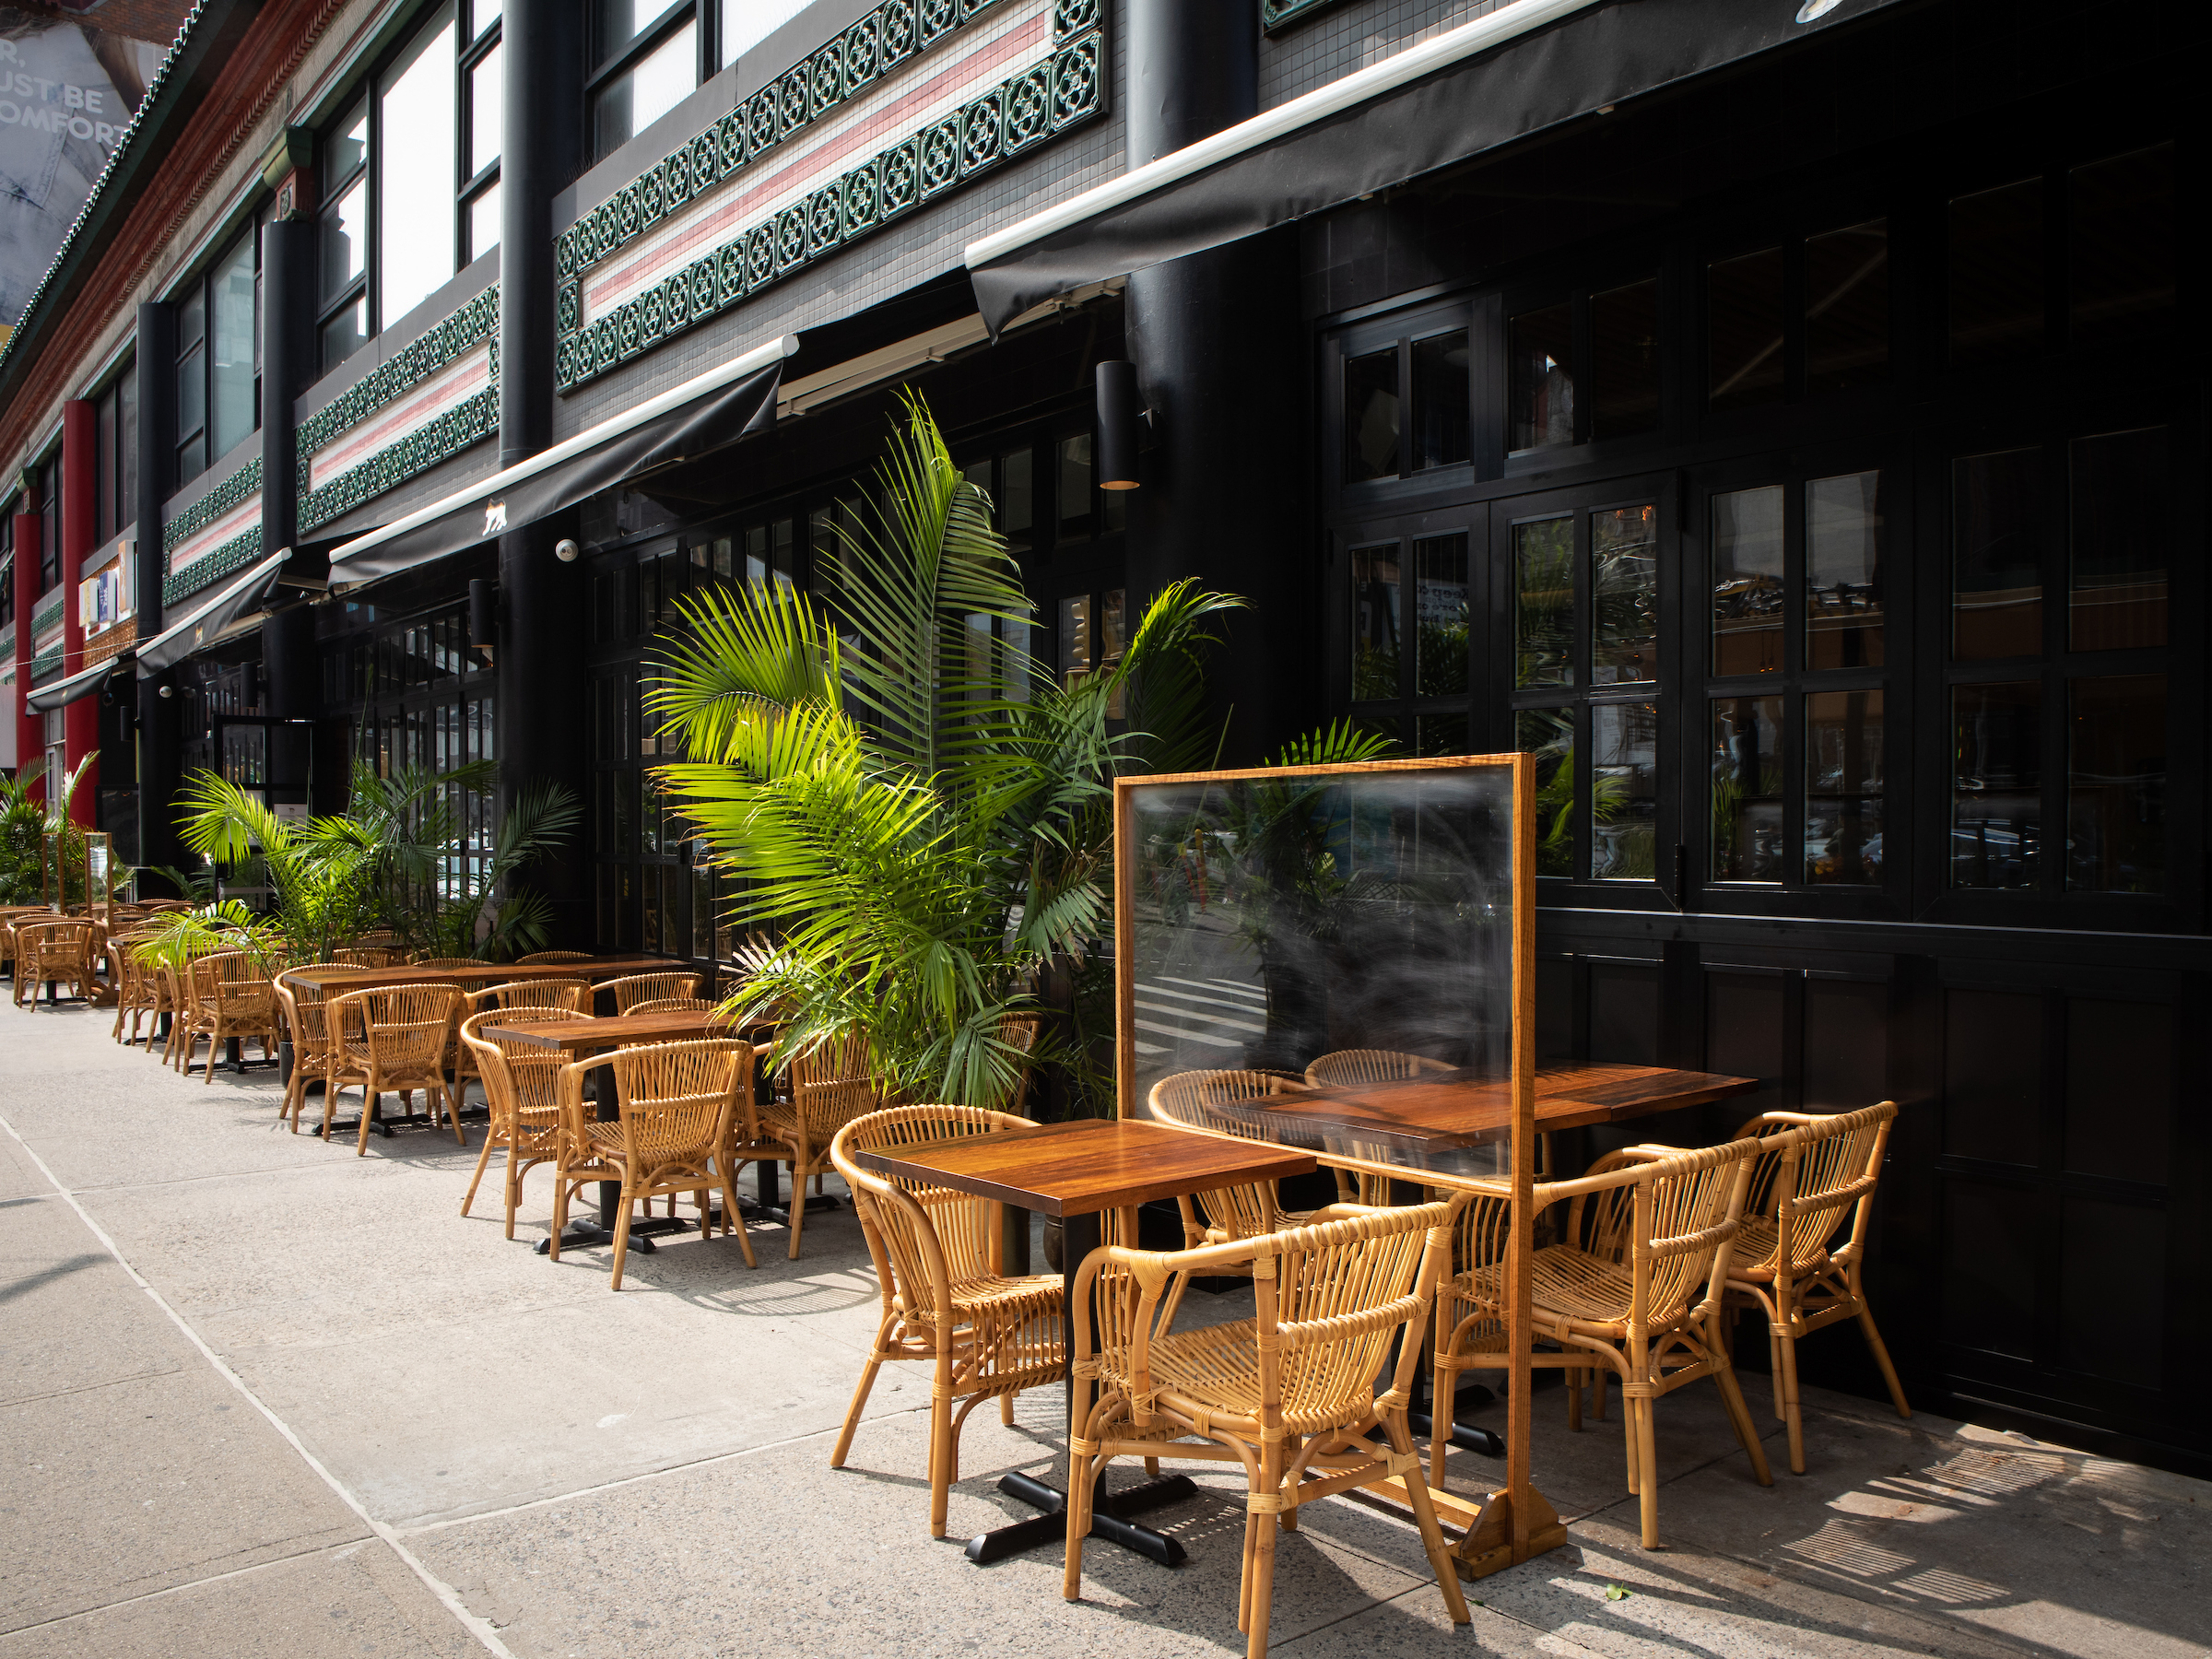 Light wicker chairs and wooden tables with green palm plants in between set up on the sidewalk alongside the exterior of the restaurant